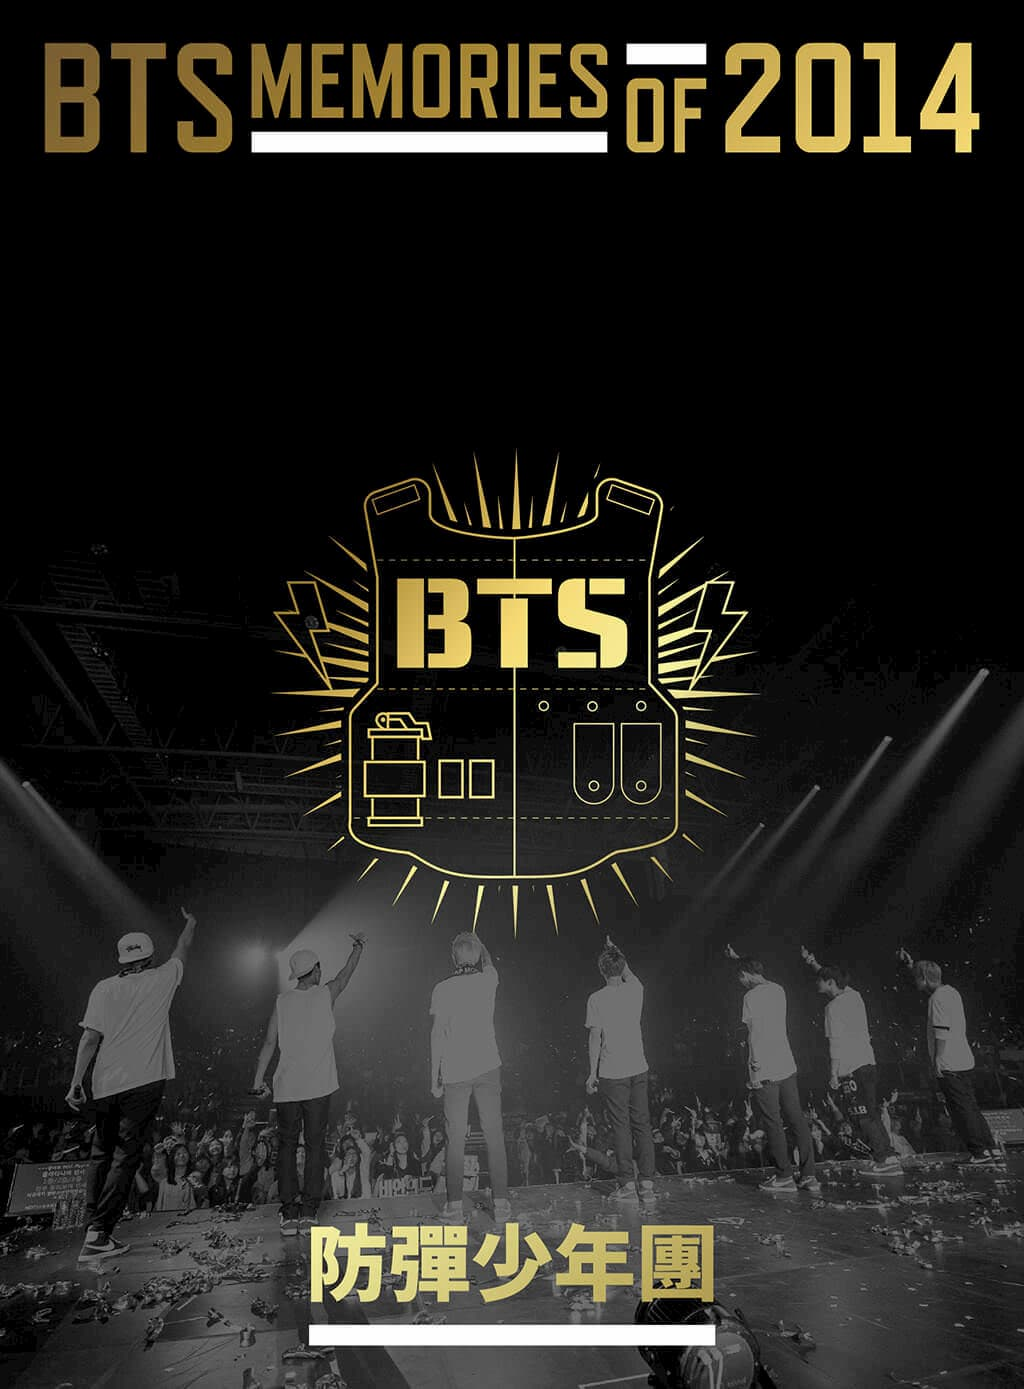 防弾少年団 BTS MEMORIES OF 2014